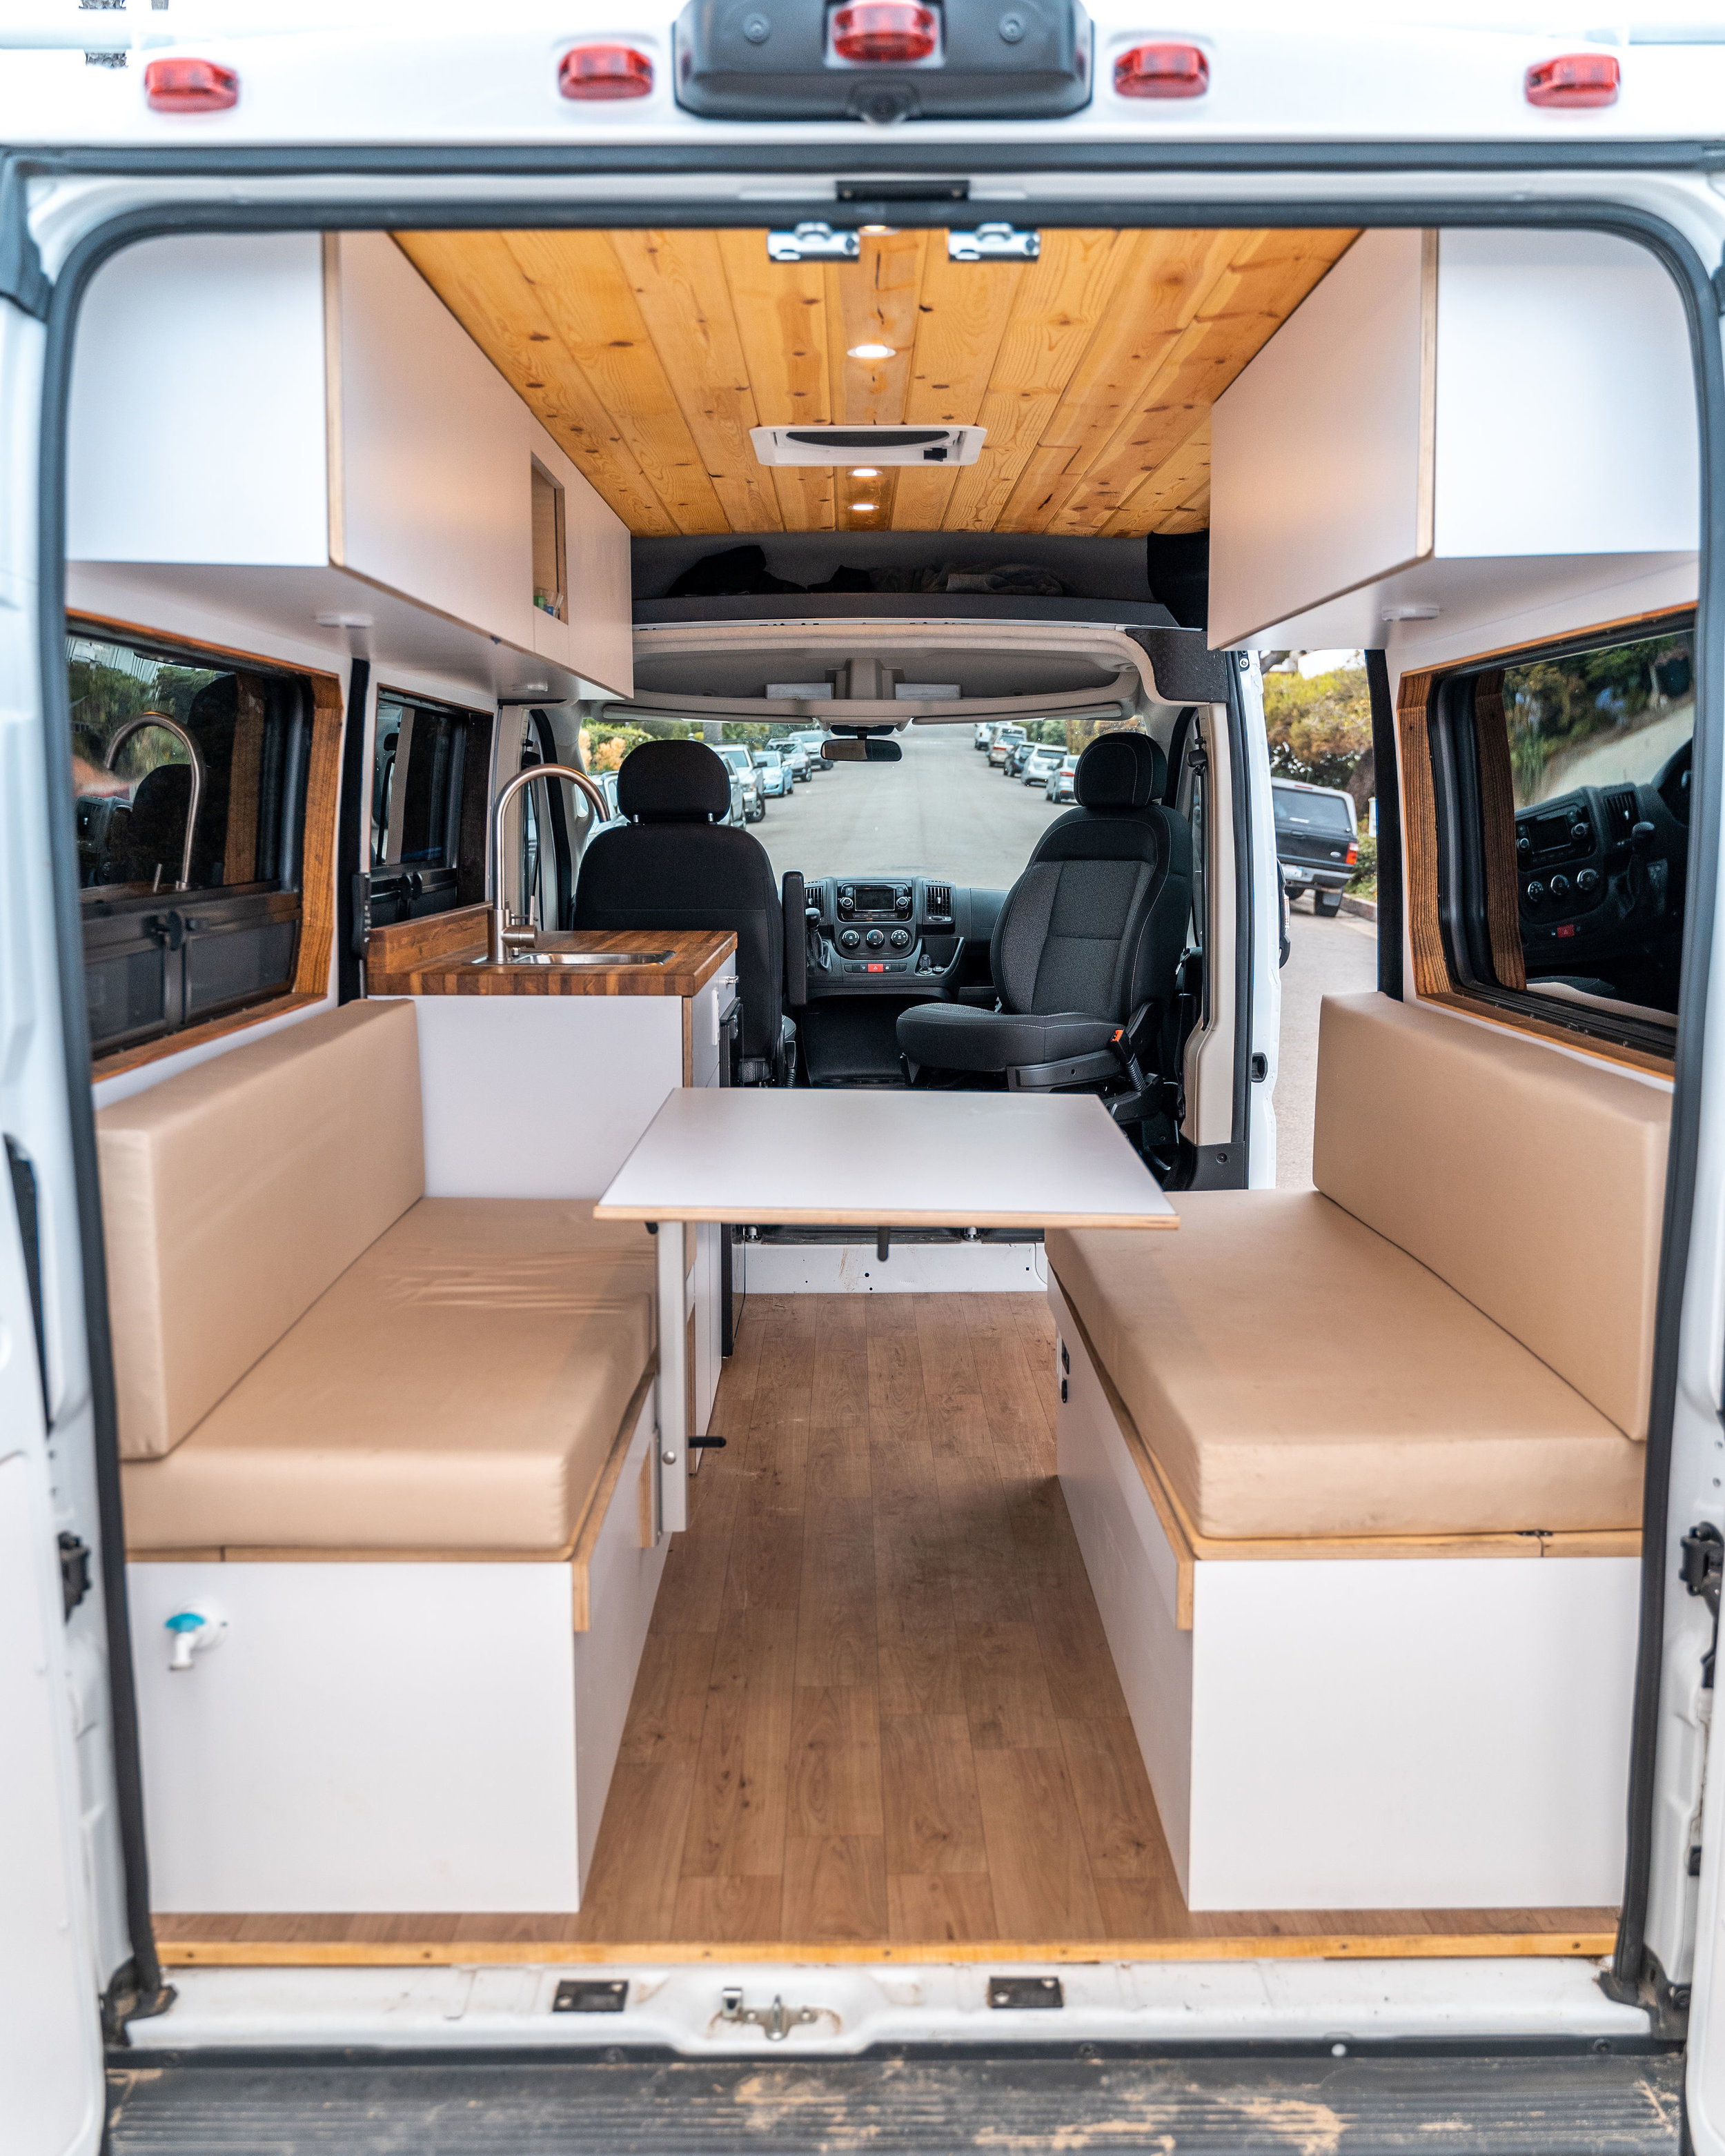 Does your vanlife dream camper provide dining space or work space for four people?